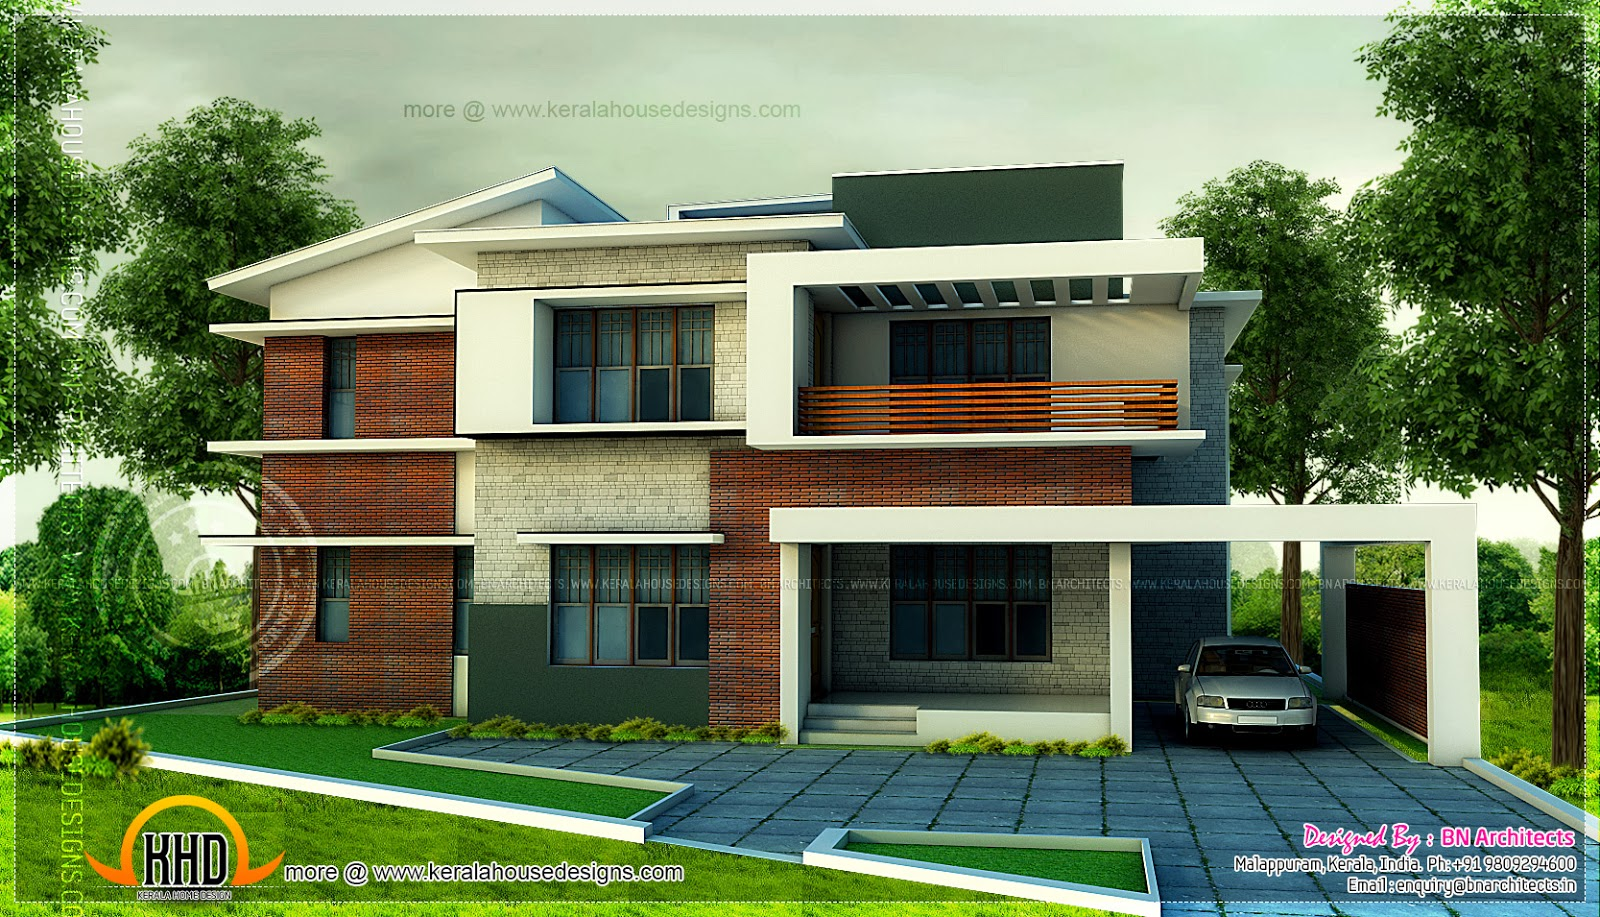 3-BED ROOM CONTEMPORARY HOME Part - 45: Modern Home Design. Facilities In This House